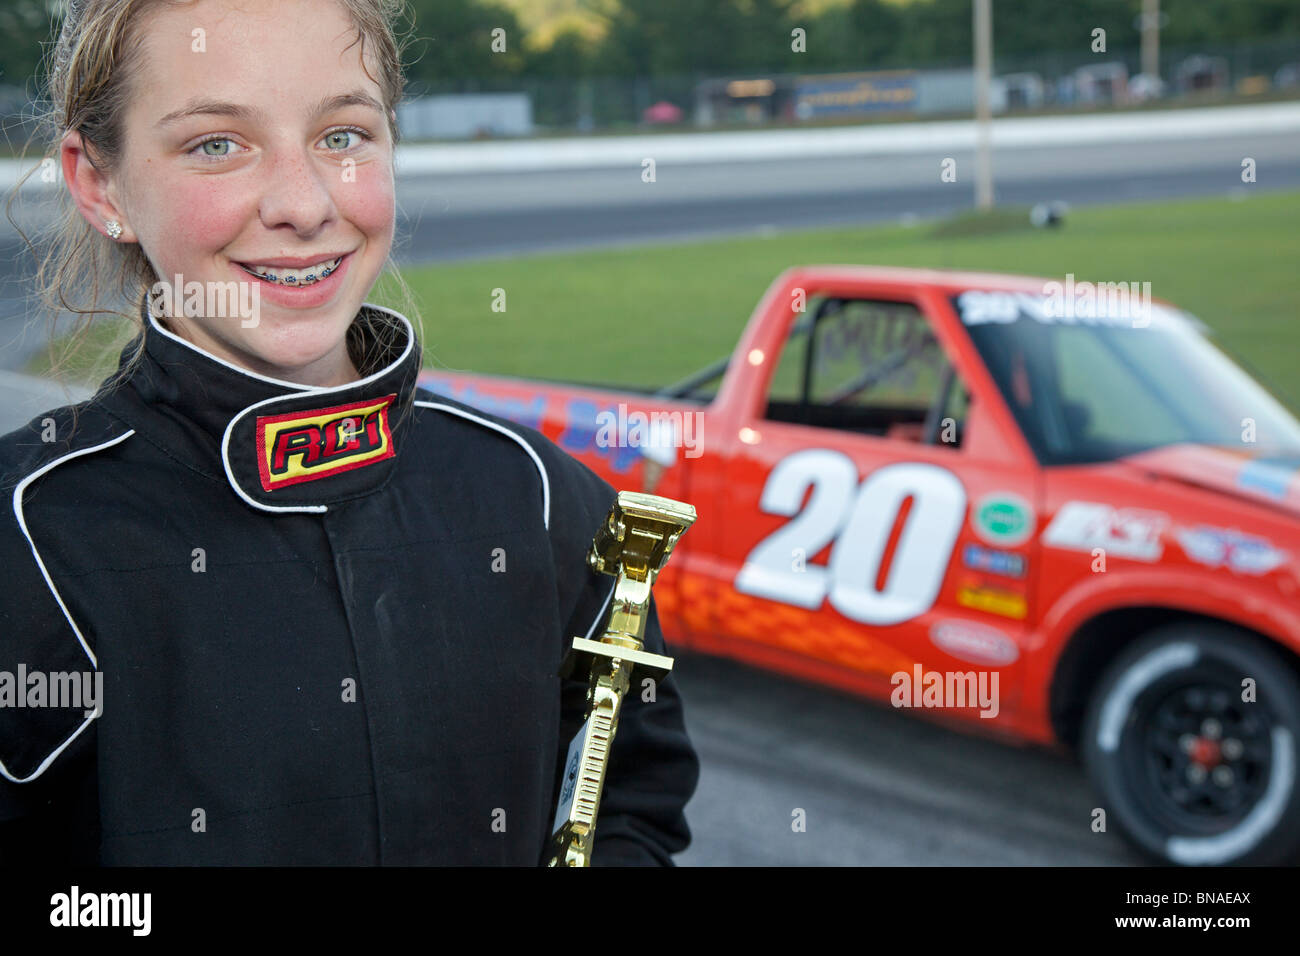 Thirteen-year-old Stock Car Race Winner Stock Photo: 30348946 - Alamy